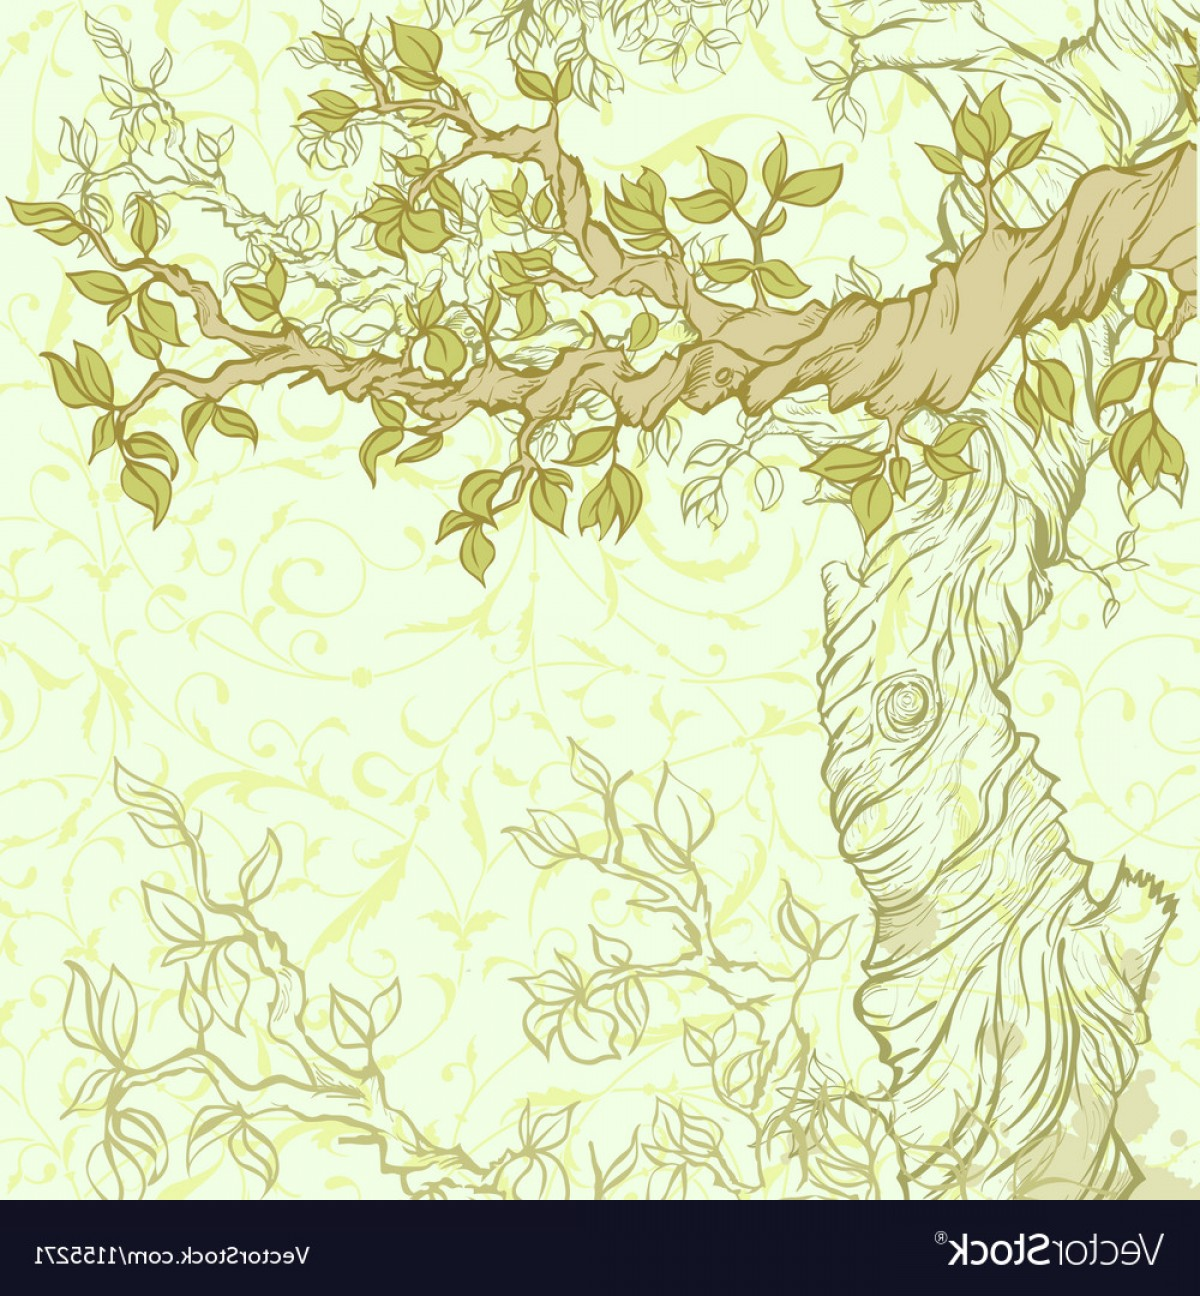 Tree Branch Vector Background: Spring Vintage Garden Background With Tree Branch Vector